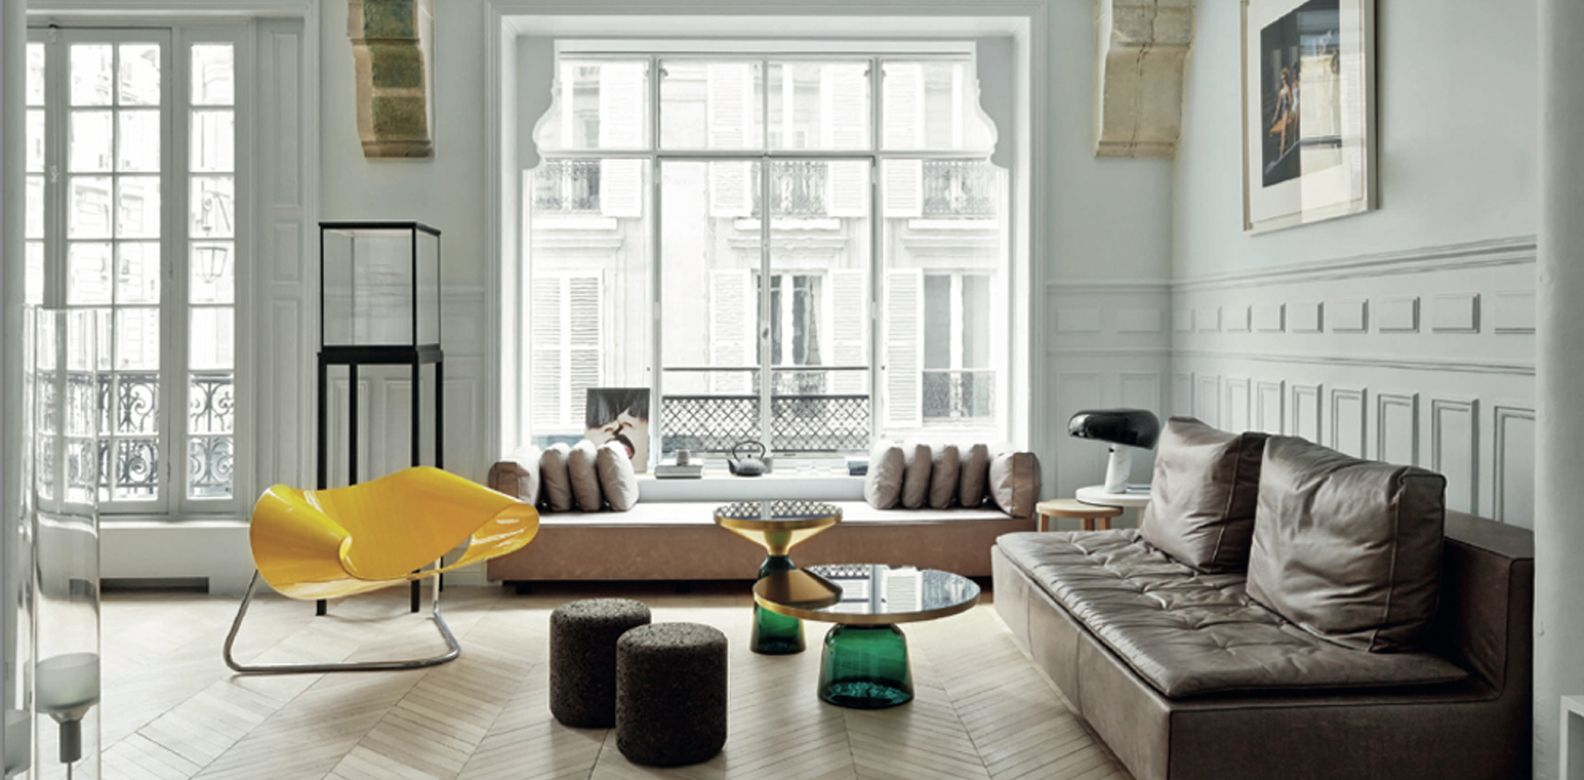 5 Things The French Can Teach Us About Home Decor Hong Kong Tatler